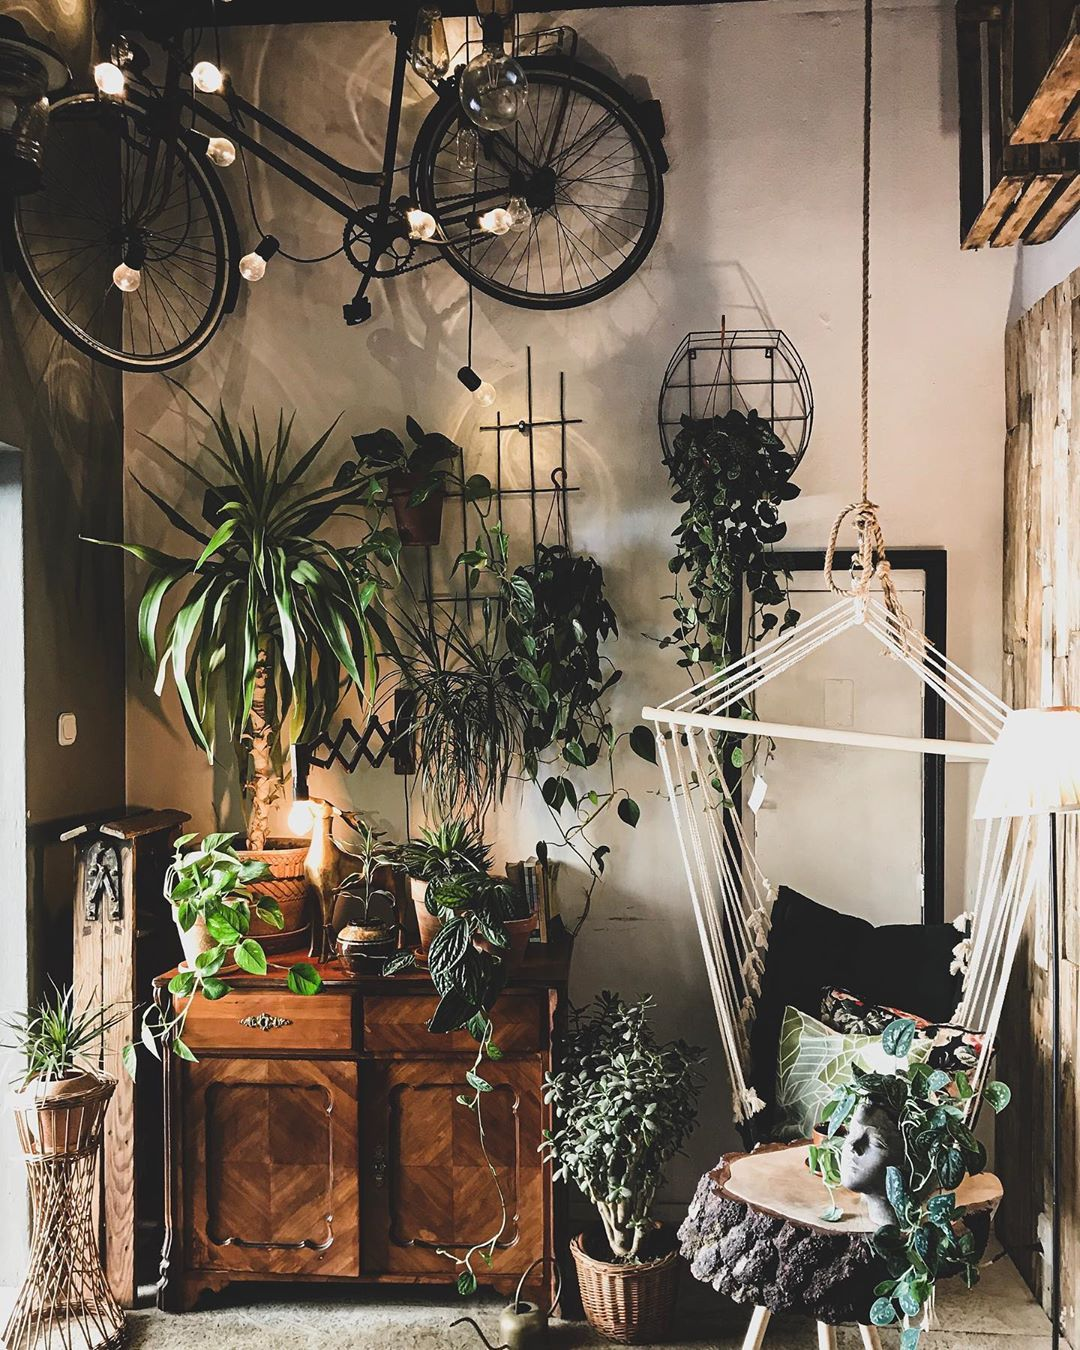 @slodkichlopak #interiordesign #homedecor #bohostyle #industrialdesign #vintage #prl #design #plants #oldschool #bike